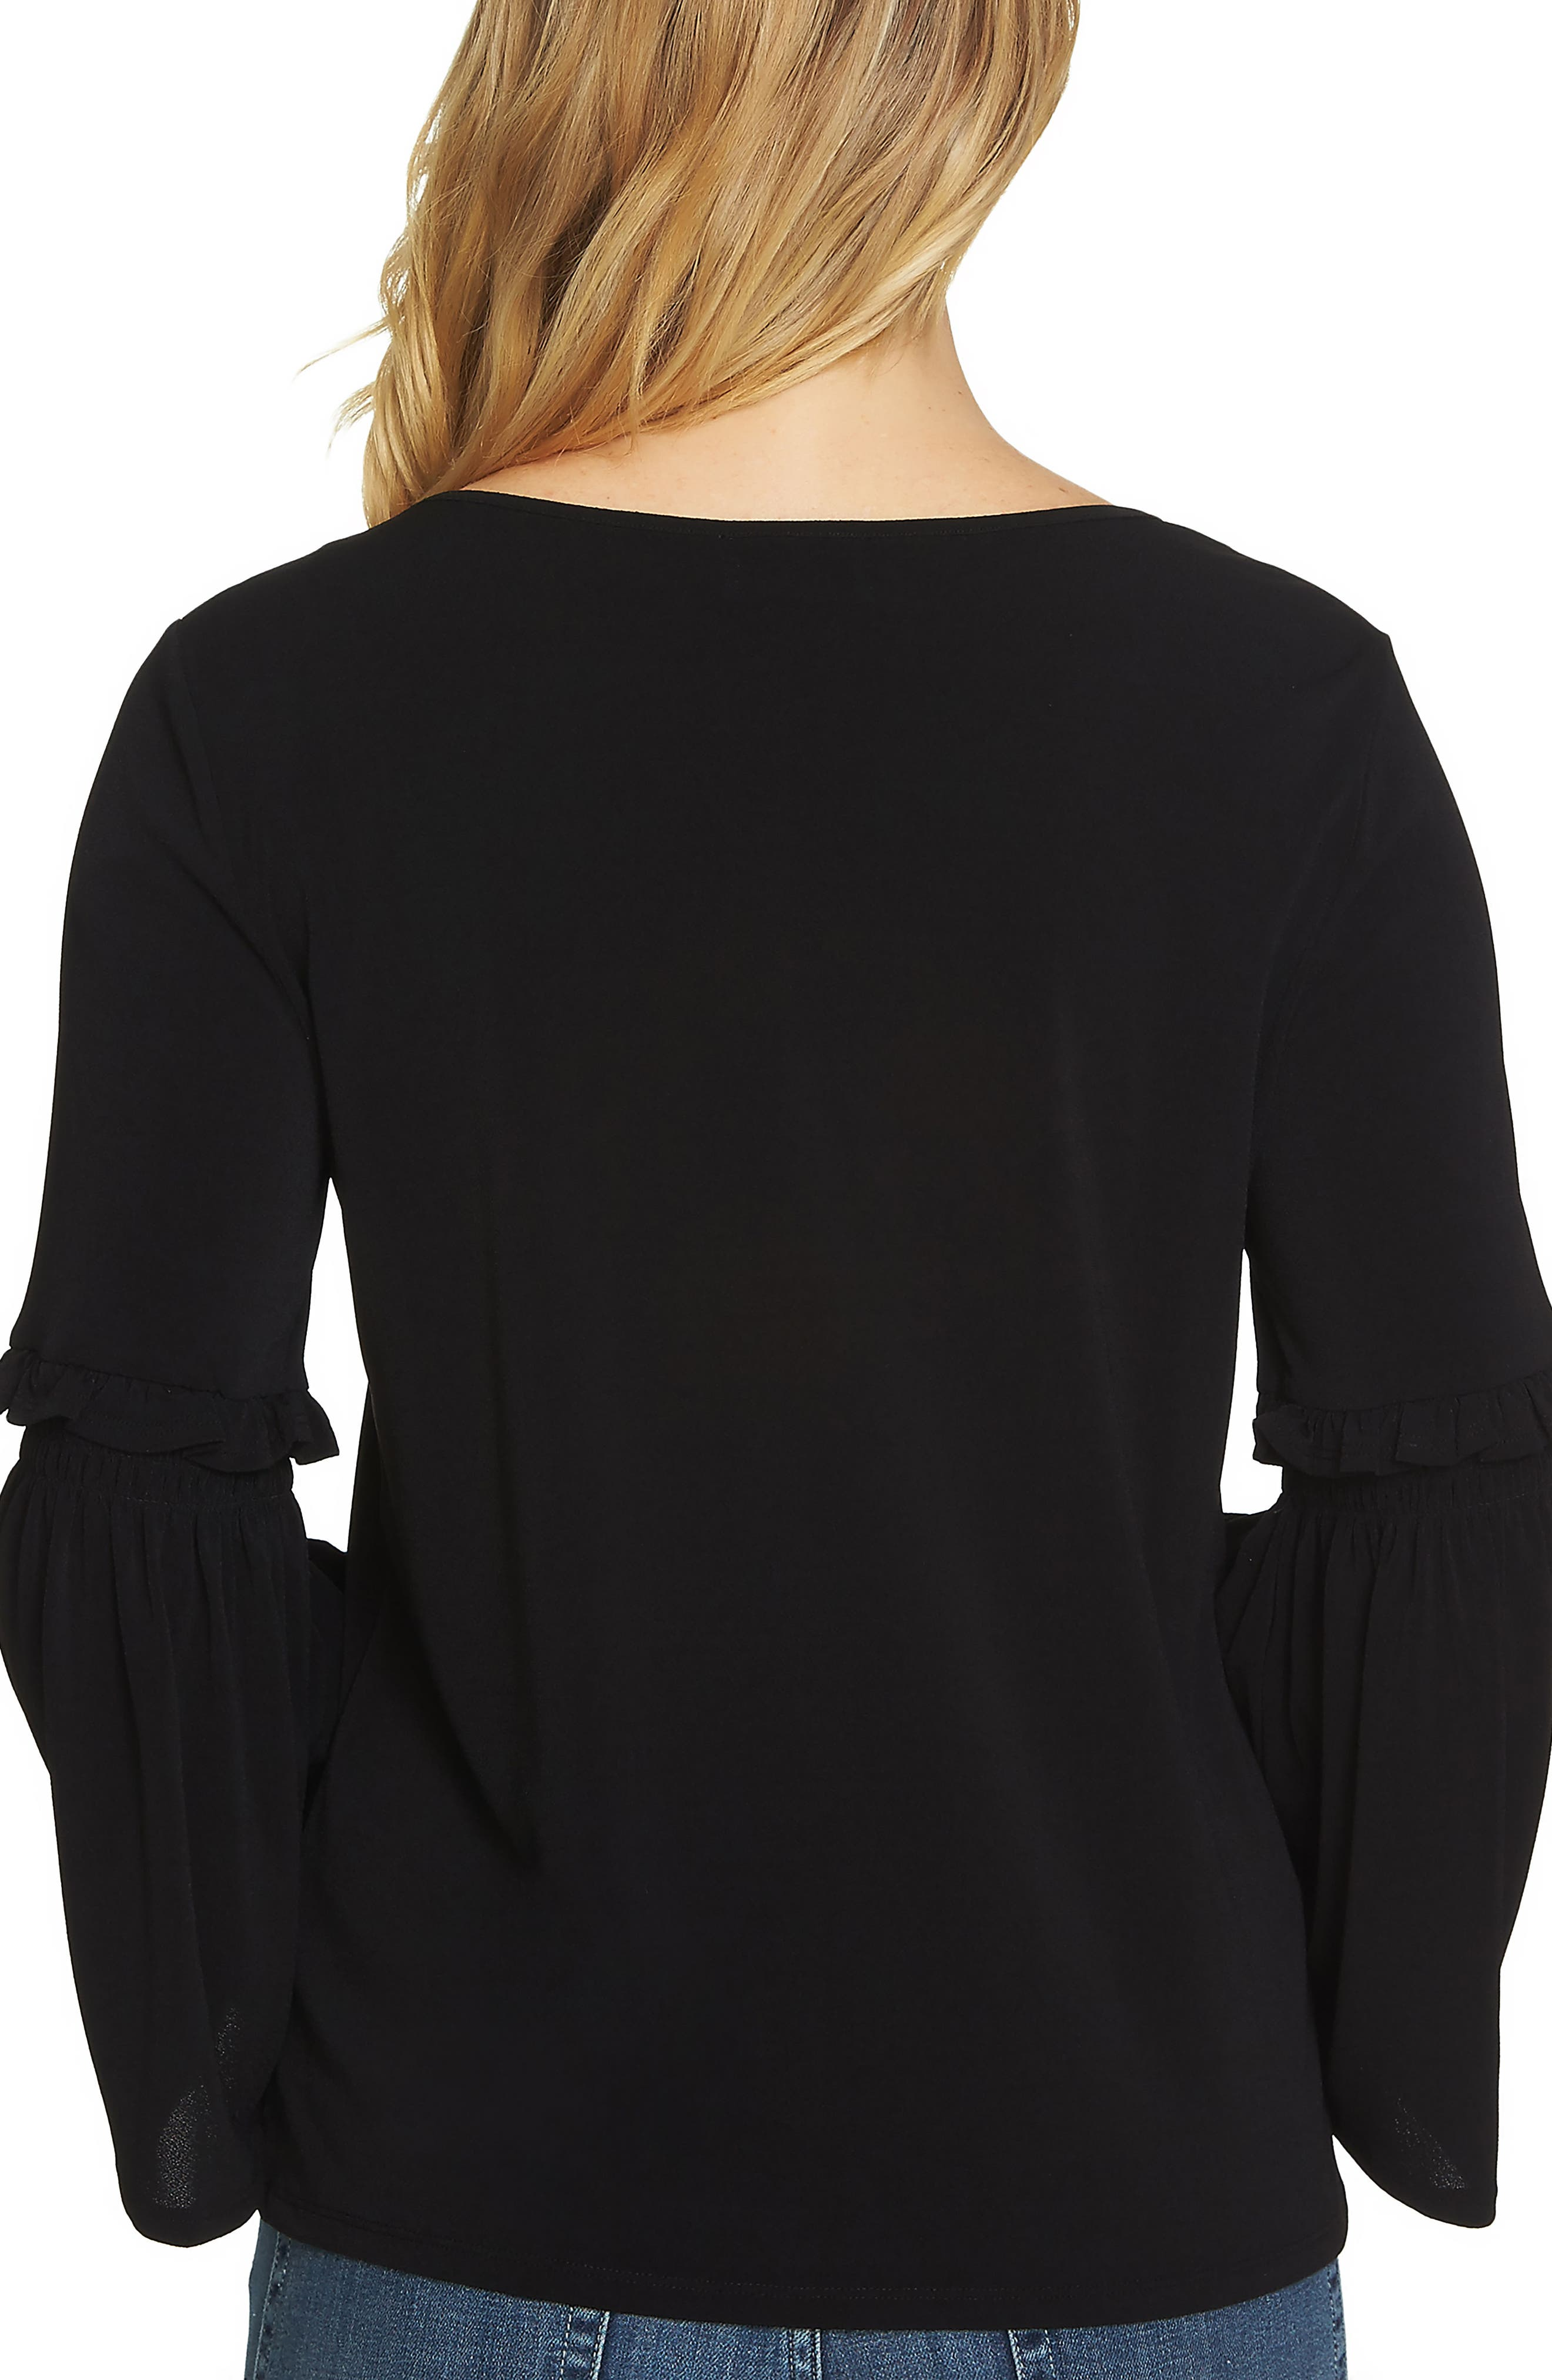 Bell Sleeve Knit Top,                             Alternate thumbnail 5, color,